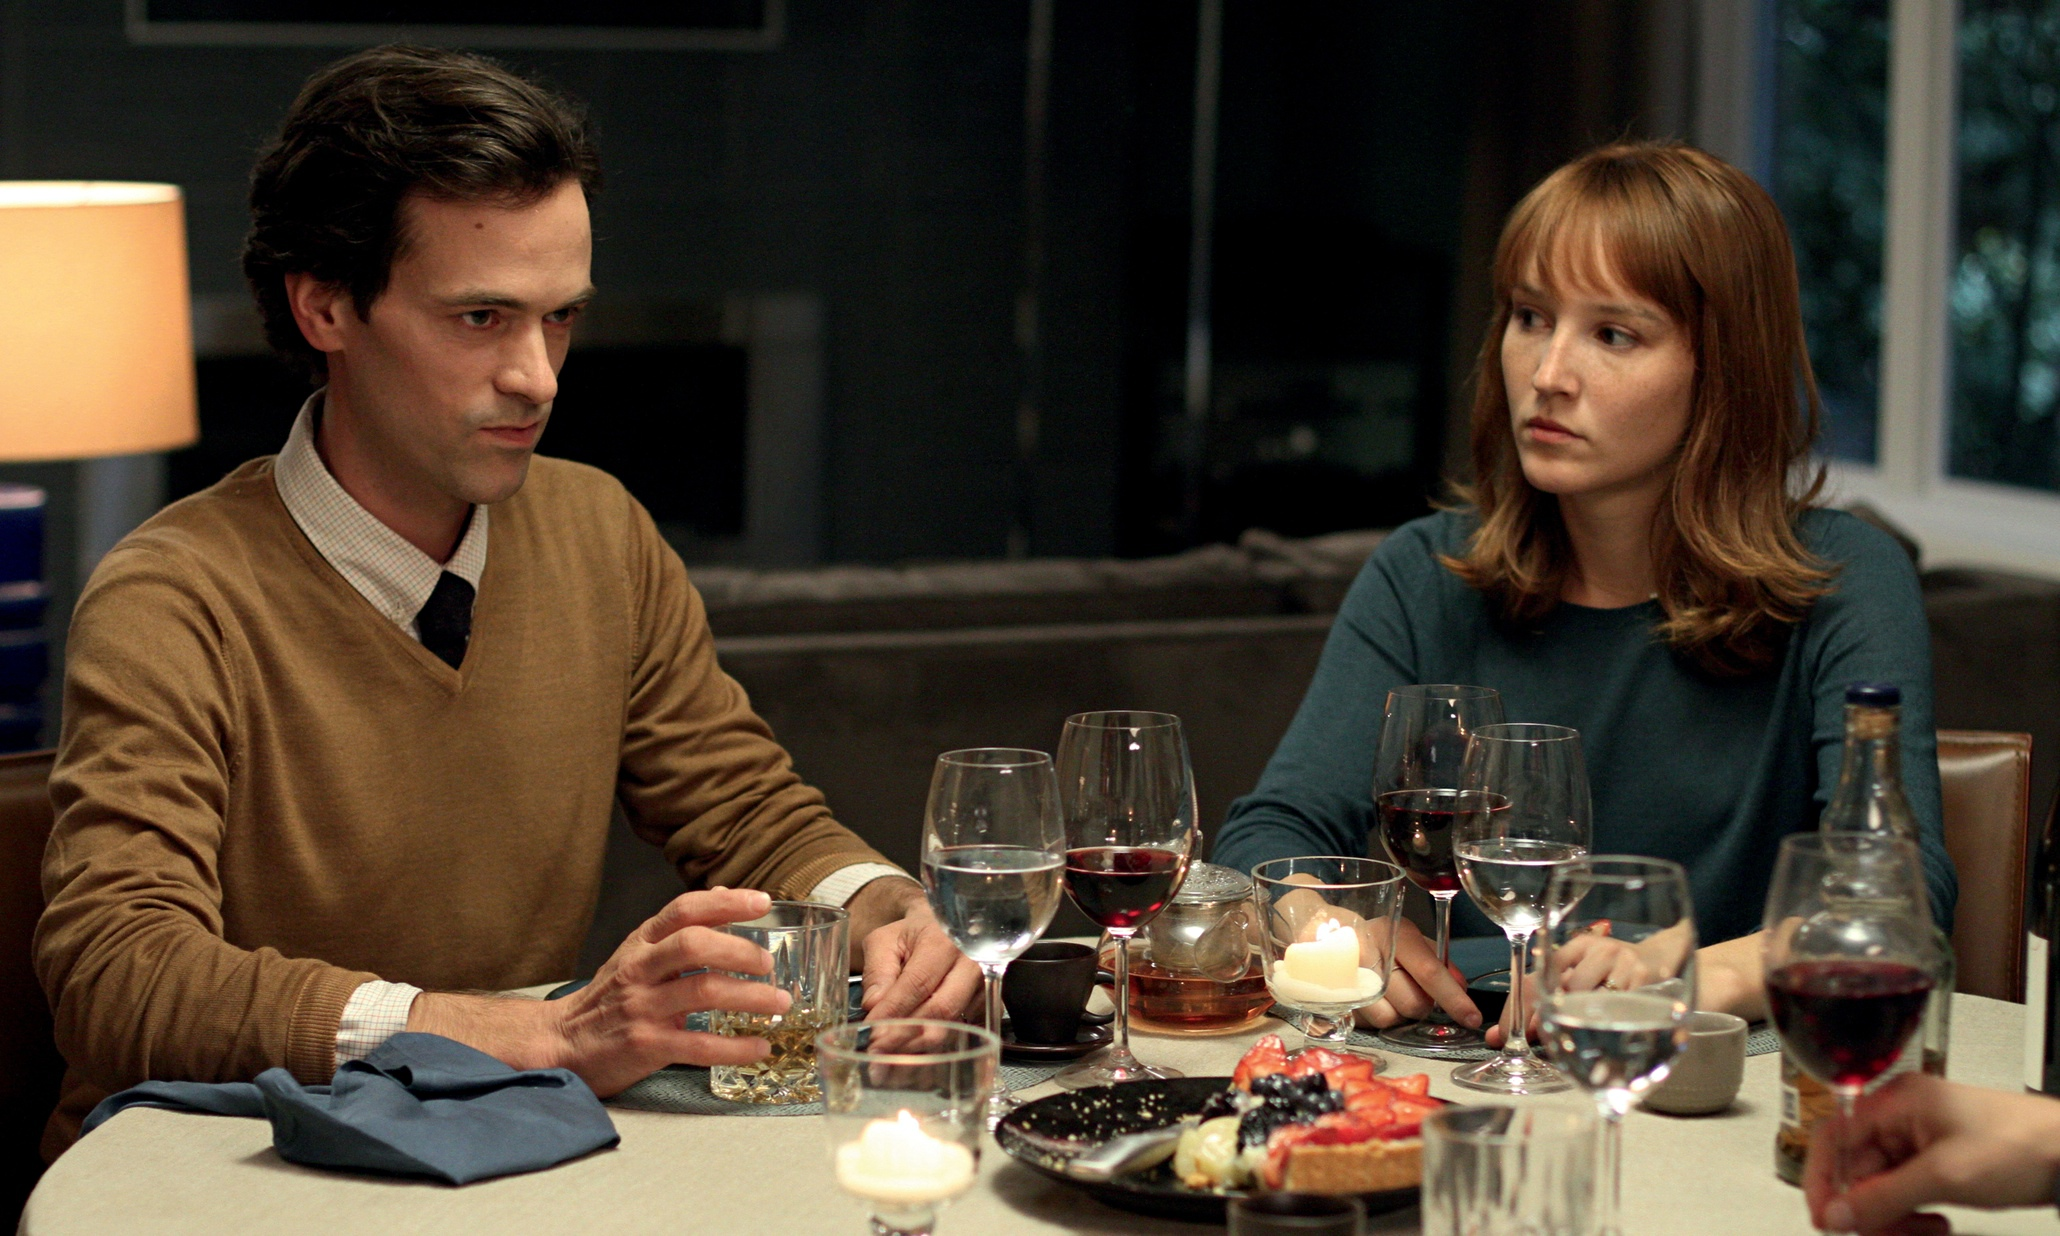 The New Girlfriend, François Ozon film